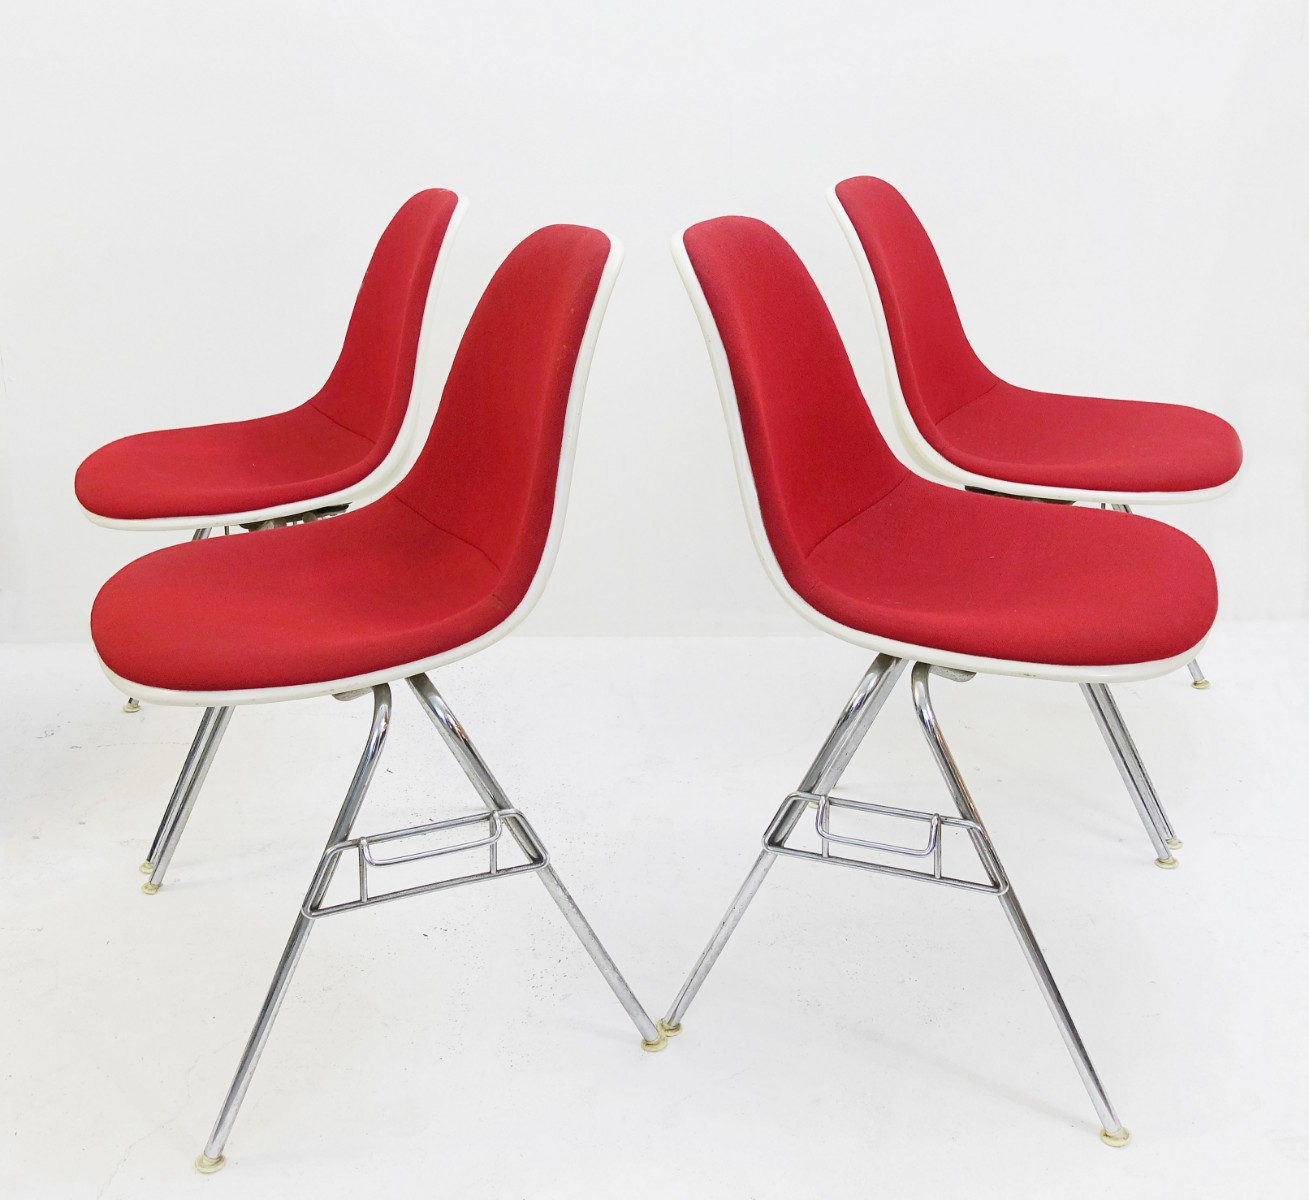 set of 4 american dss stacking chair by charles ray eames for h